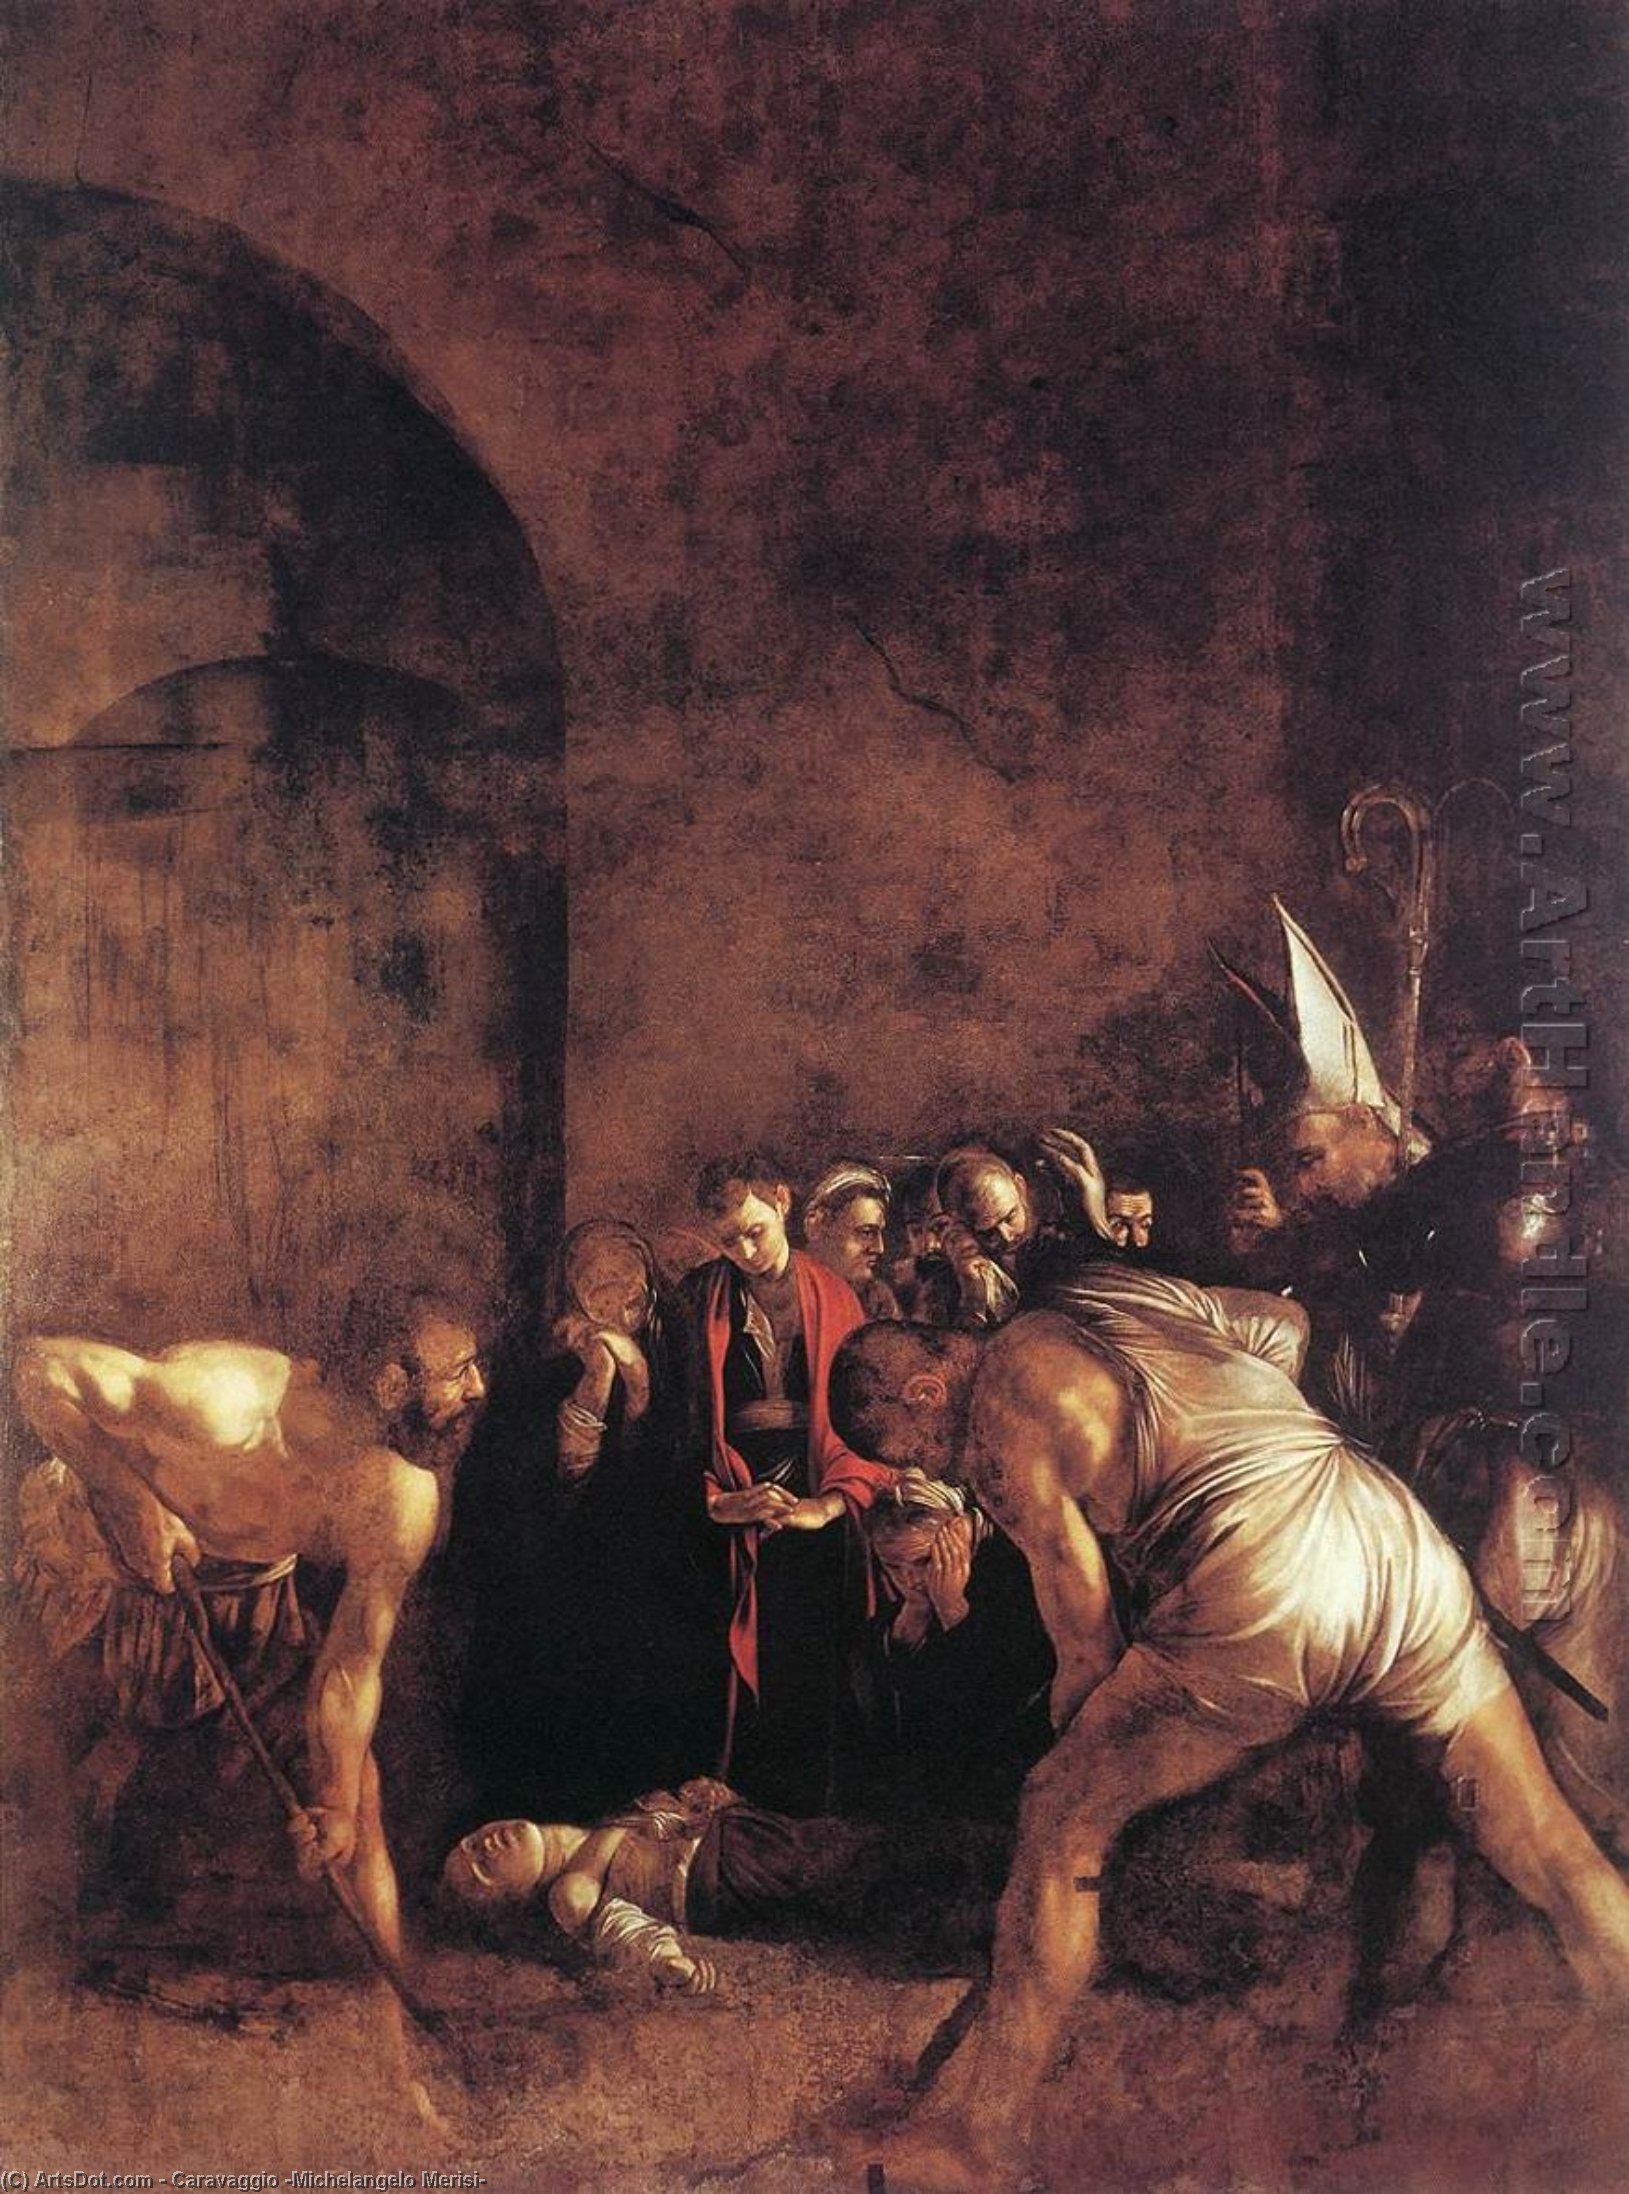 WikiOO.org - Encyclopedia of Fine Arts - Festés, Grafika Caravaggio (Michelangelo Merisi) - Burial Of St Lucy